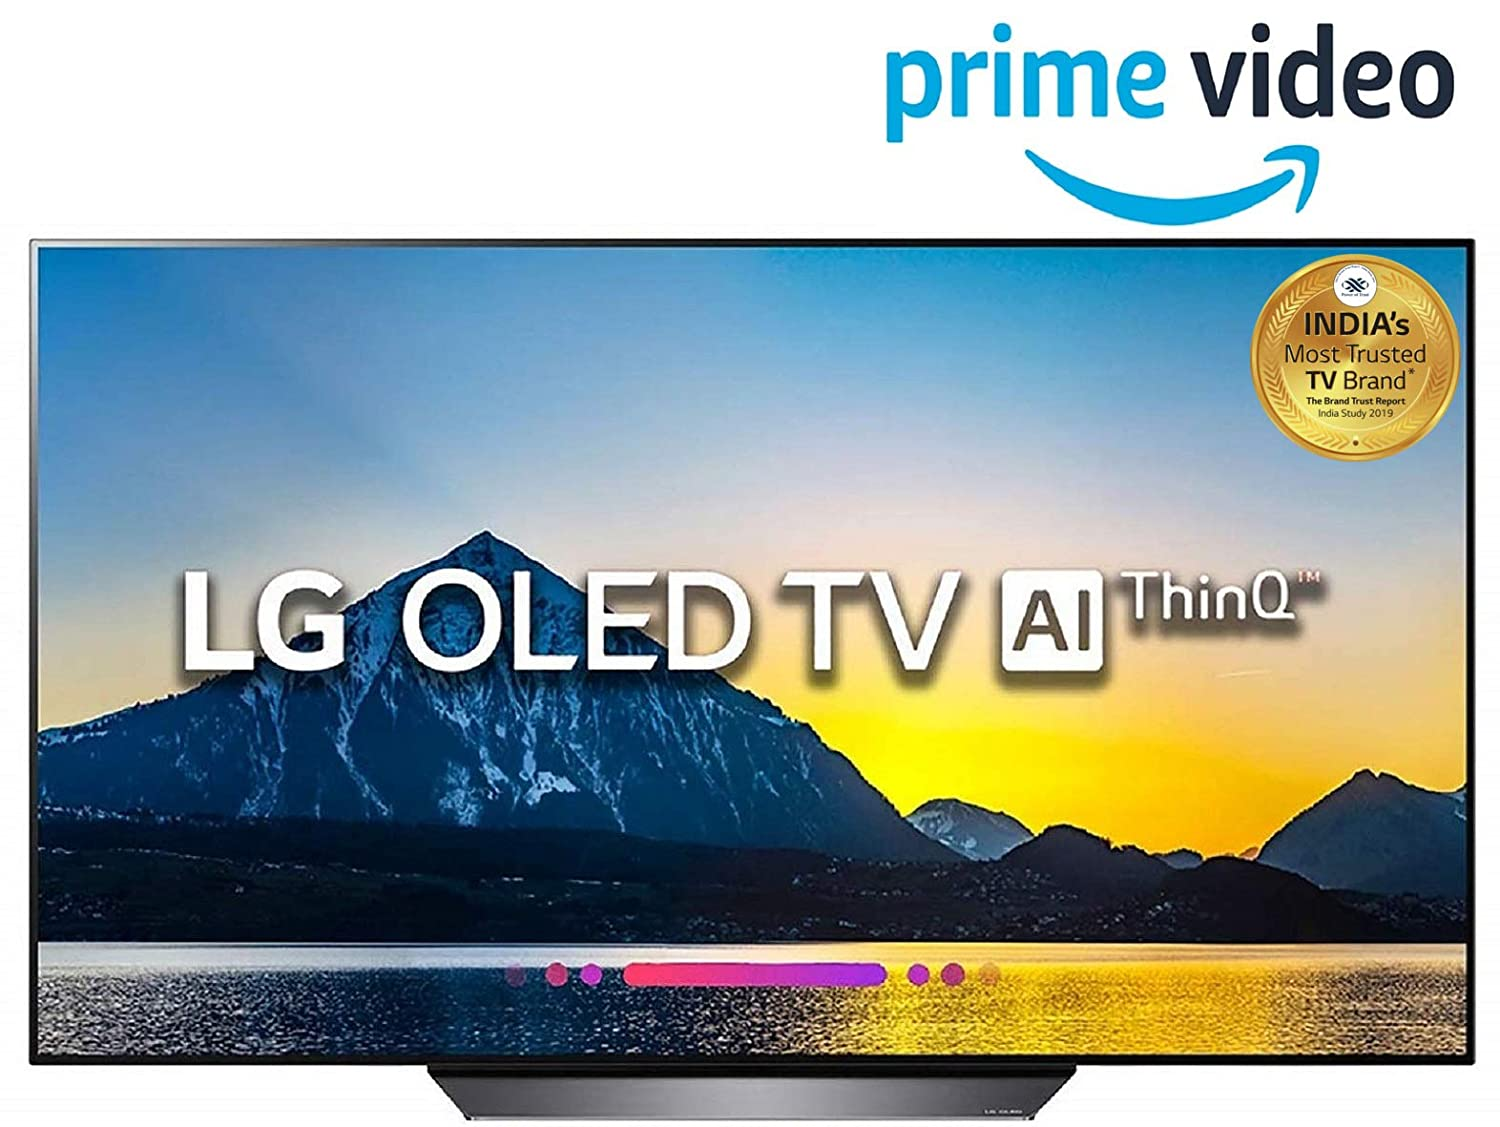 Best OLED TVs in India - Best 65 Inch LG OLED TV in India - LG OLED Smart TV OLED65B8PTA